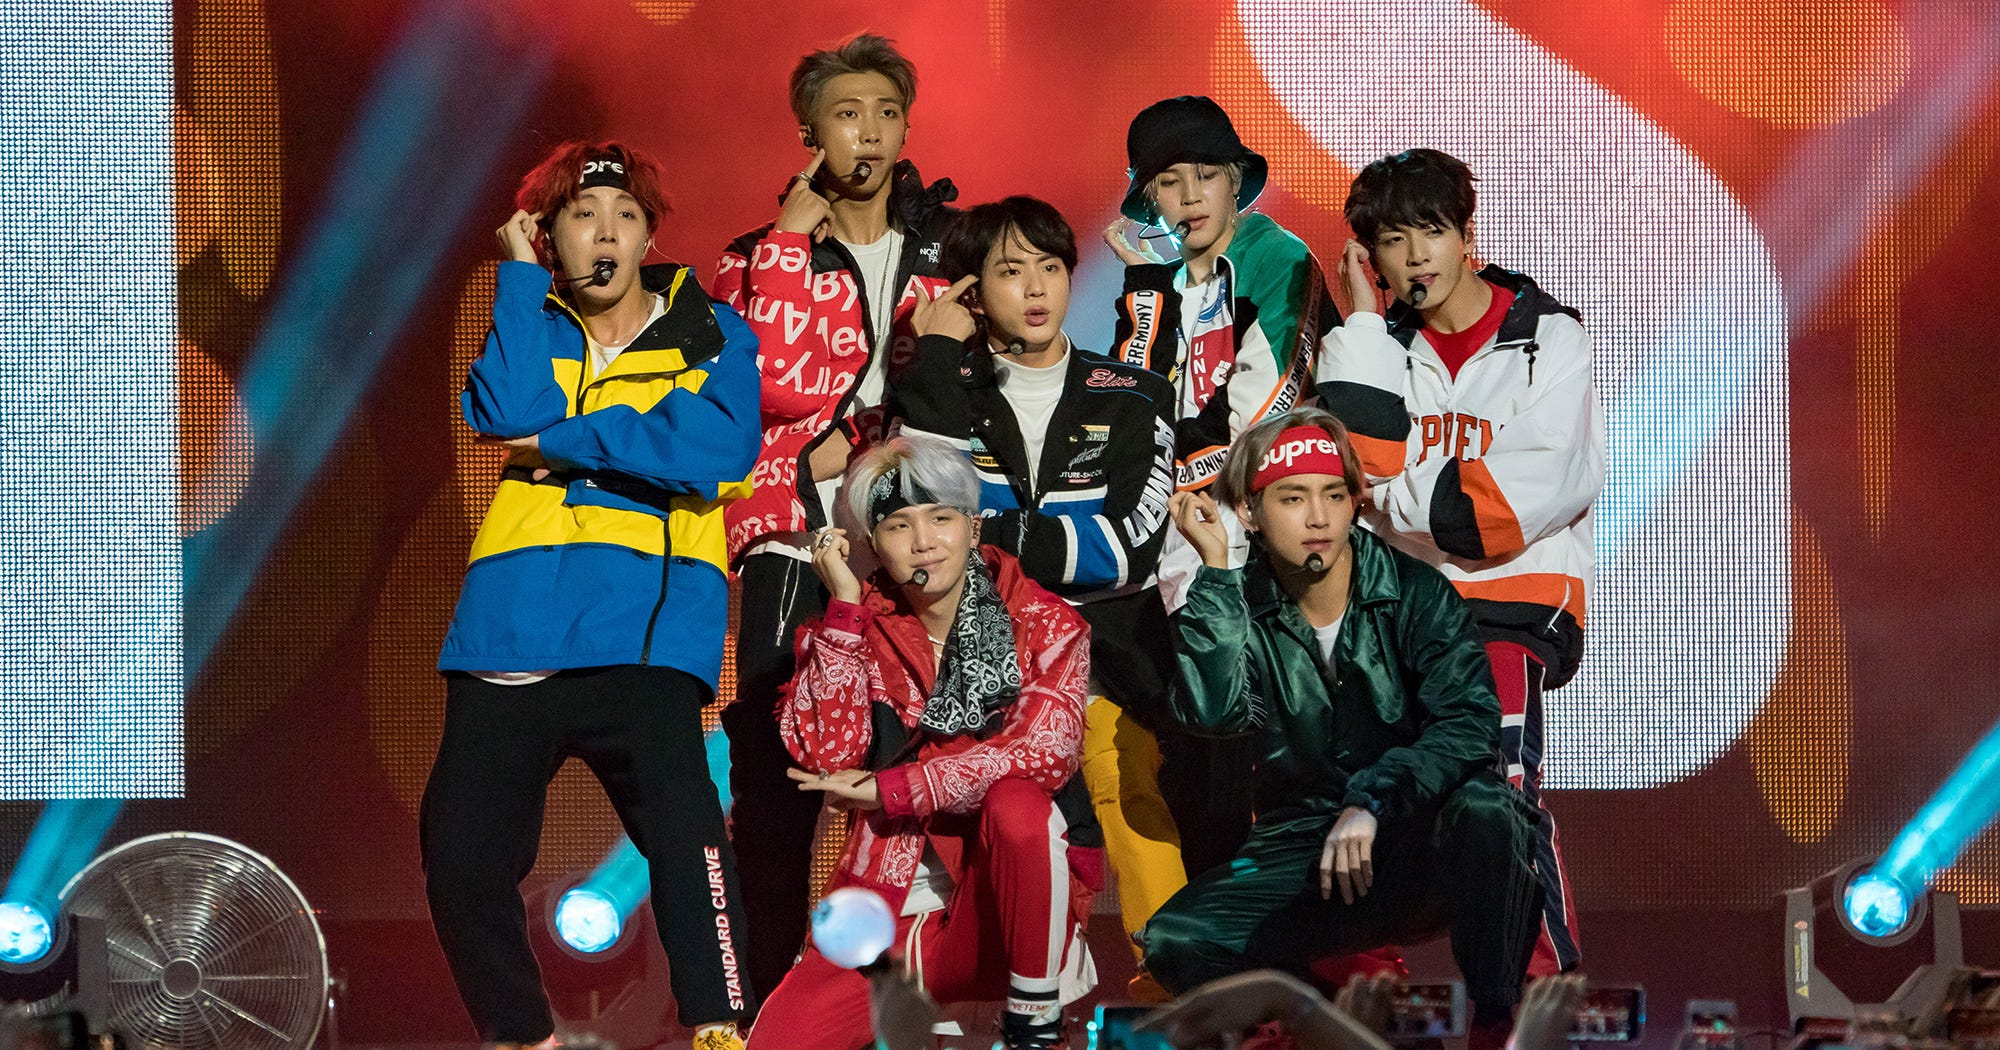 Was BTS Nominated For A Grammy? 2019 May Be Their Year